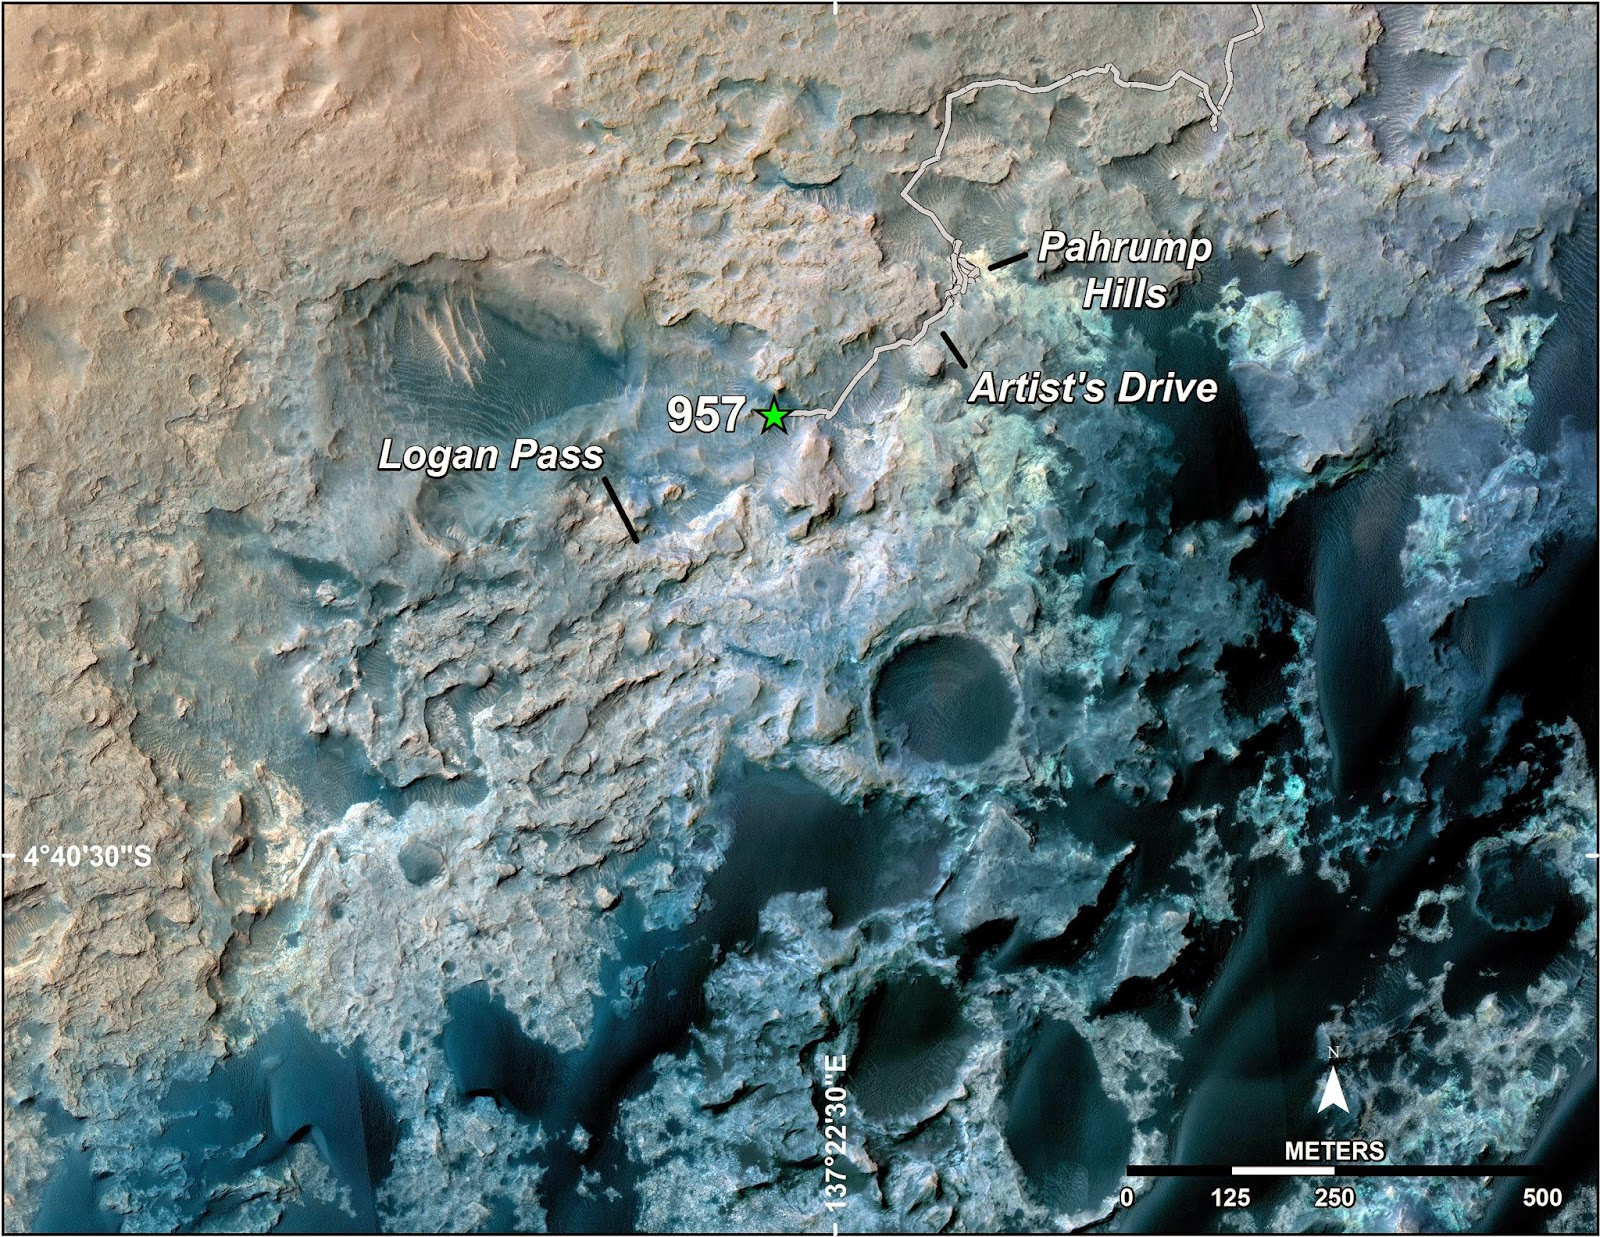 A green star marks the location of NASA's Curiosity Mars rover after a drive on the mission's 957th Martian day, or sol, (April 16, 2015). The map covers an area about 1.25 miles (2 kilometers) wide. Credits: NASA/JPL-Caltech/Univ. of Arizona